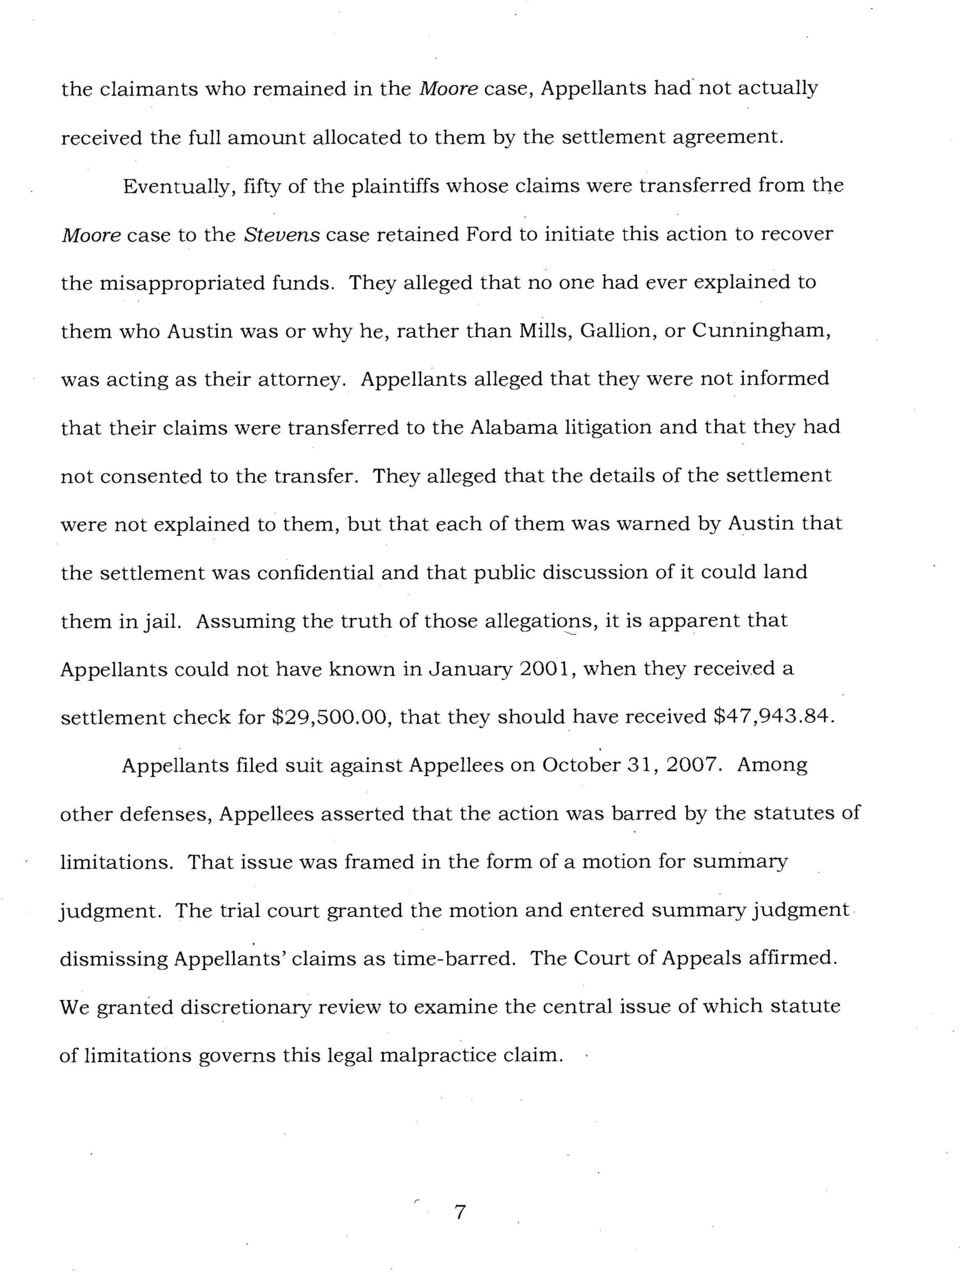 They alleged that no one had ever explained to them who Austin was or why he, rather than Mills, Gallion, or Cunningham, was acting as their attorney.